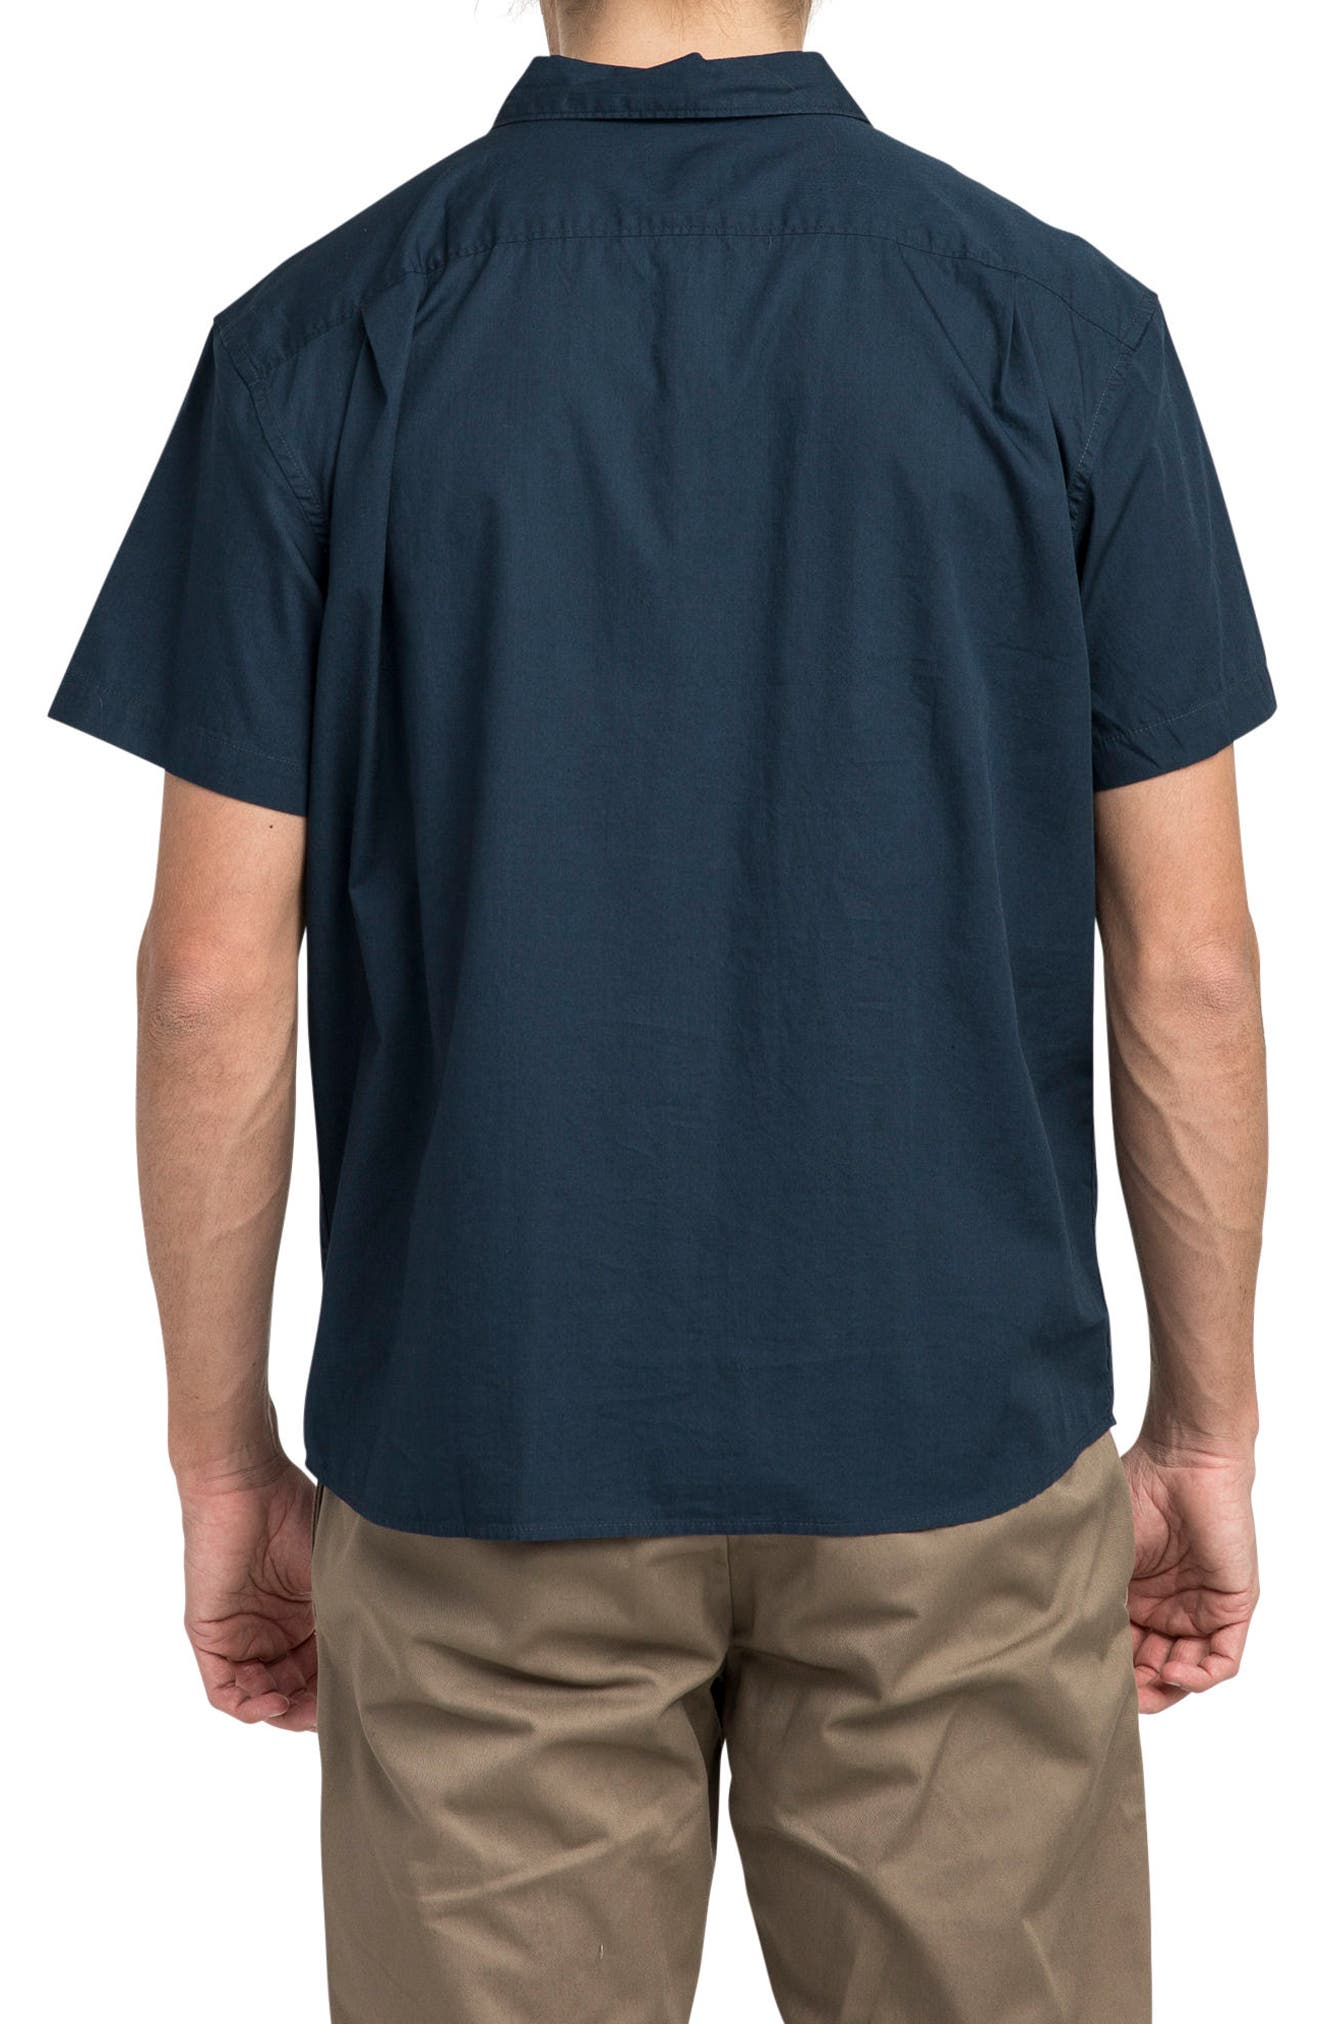 Stress Short Sleeve Shirt,                             Alternate thumbnail 4, color,